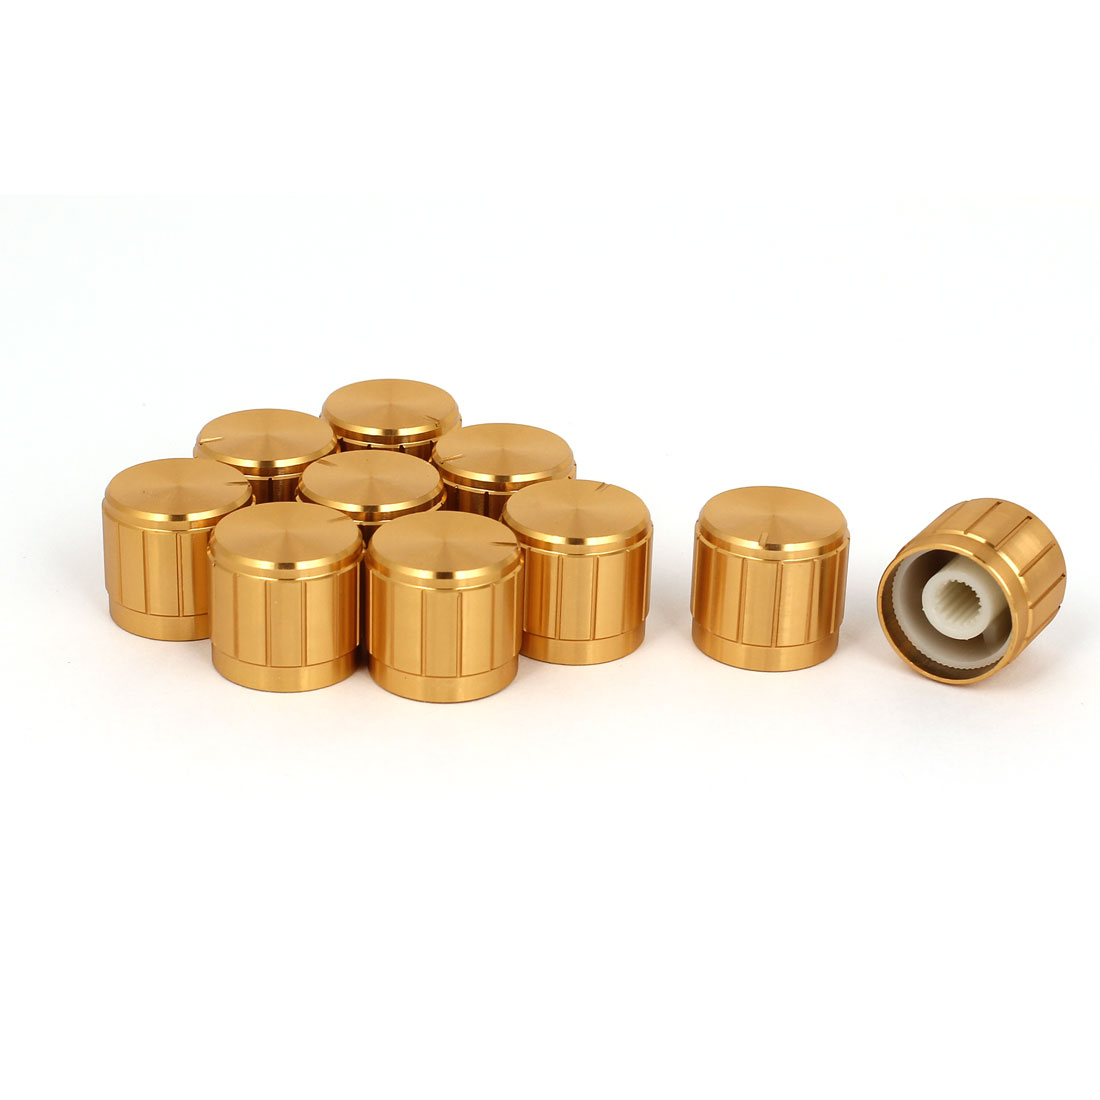 10pcs 19x17mm Gold Tone Aluminum Alloy Rotary Potentiometer Knobs Cap